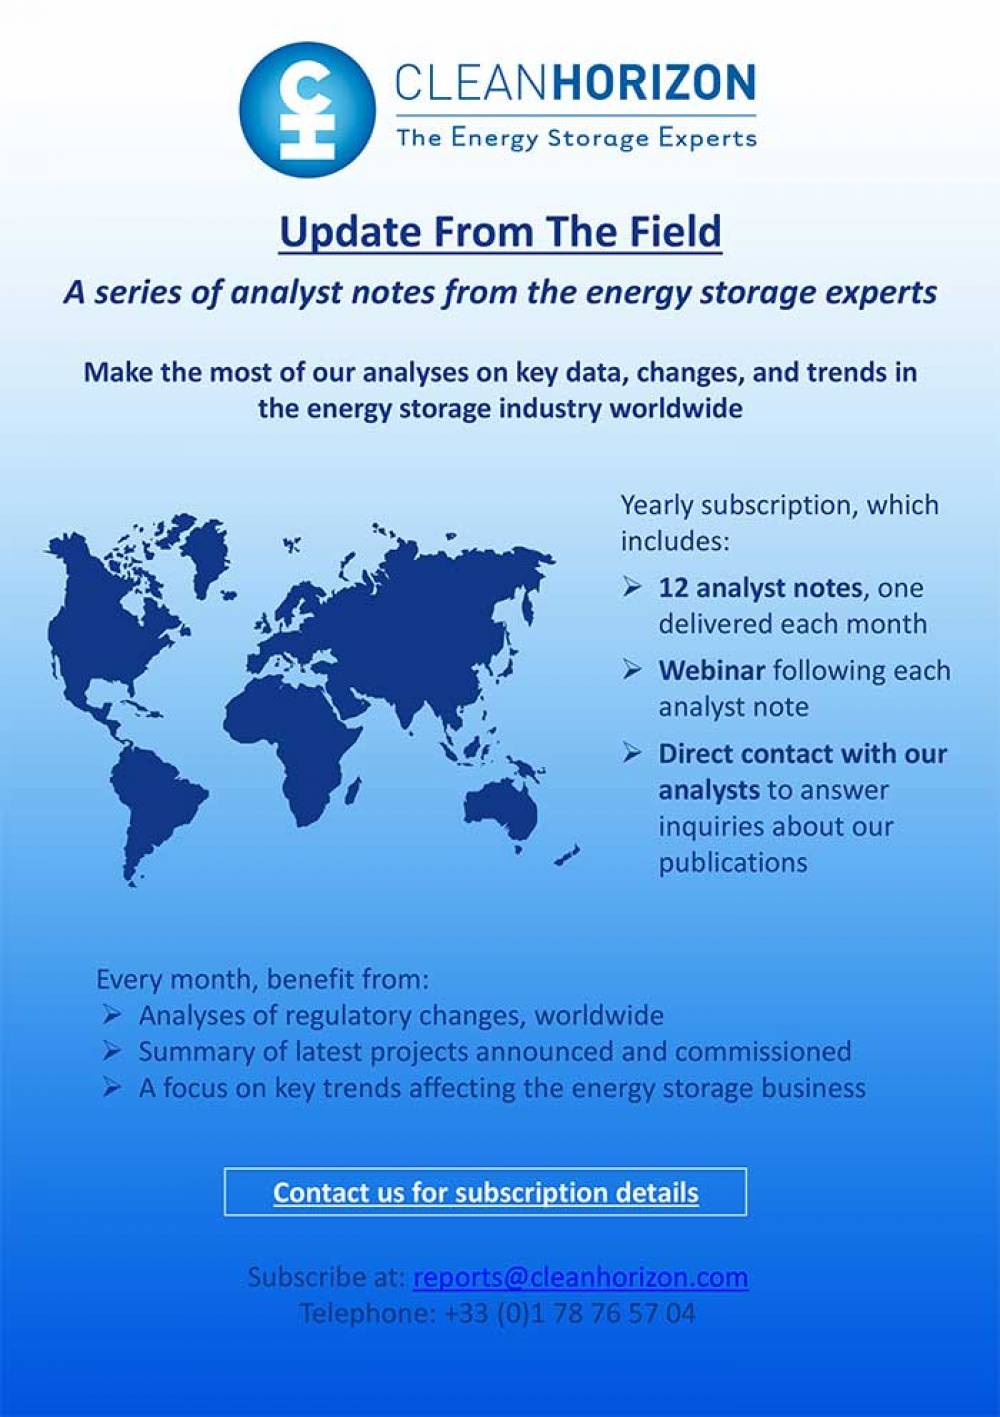 Update From The Field July 2018: Energy storage for Commercial and Industrial customers